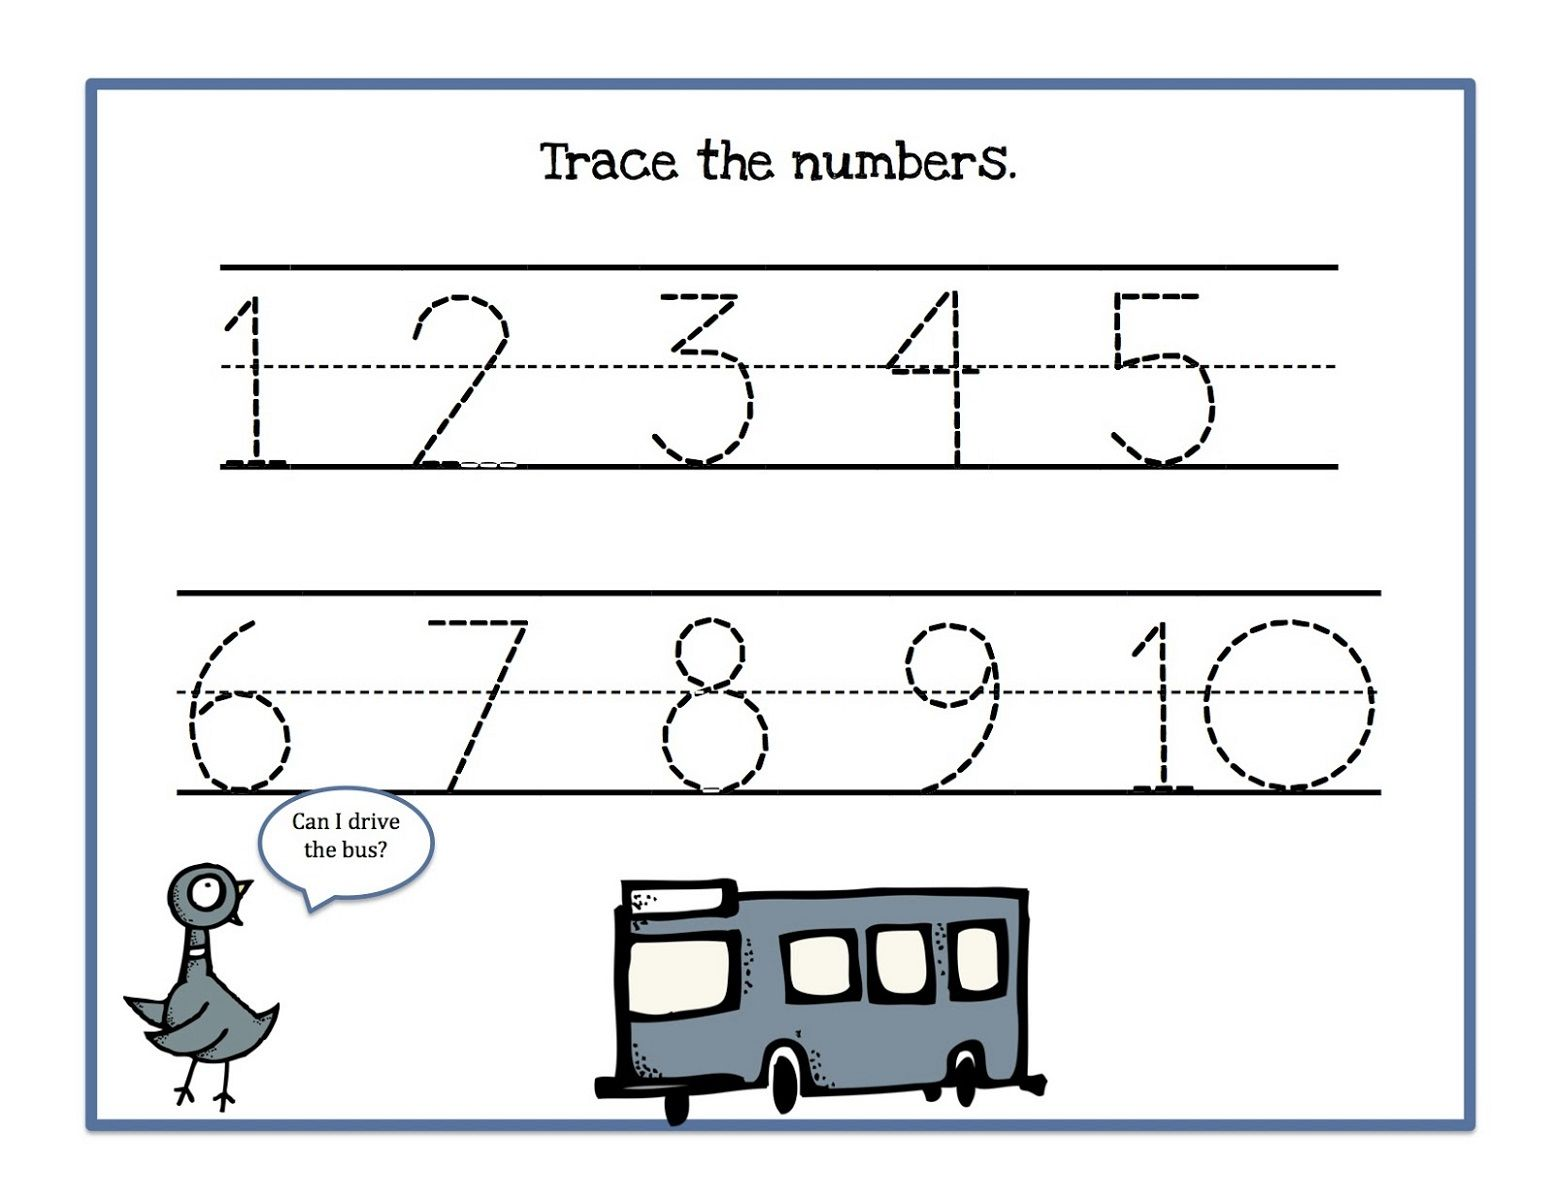 Numbers tracing printables for preschoolers - Number Trace Worksheets For Kid S Tracing Fun